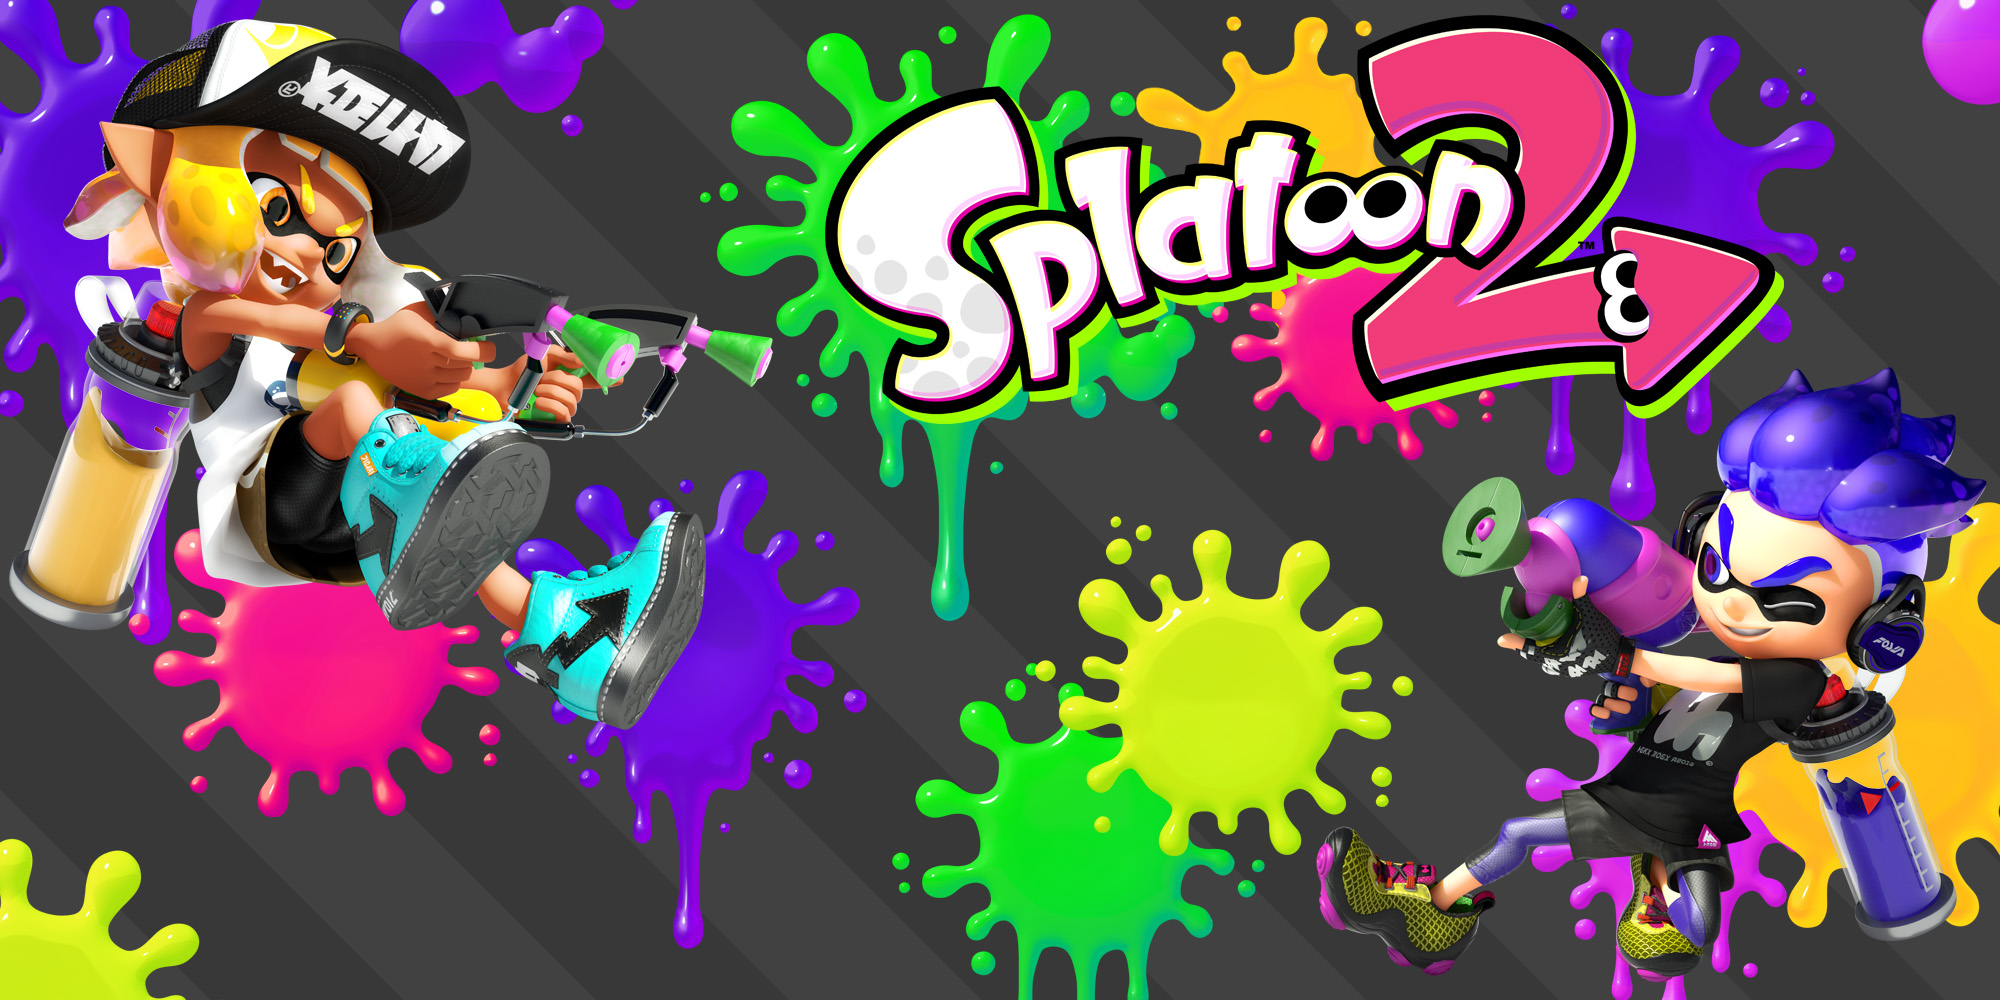 find out what stages and weapons will be available in the splatoon 2